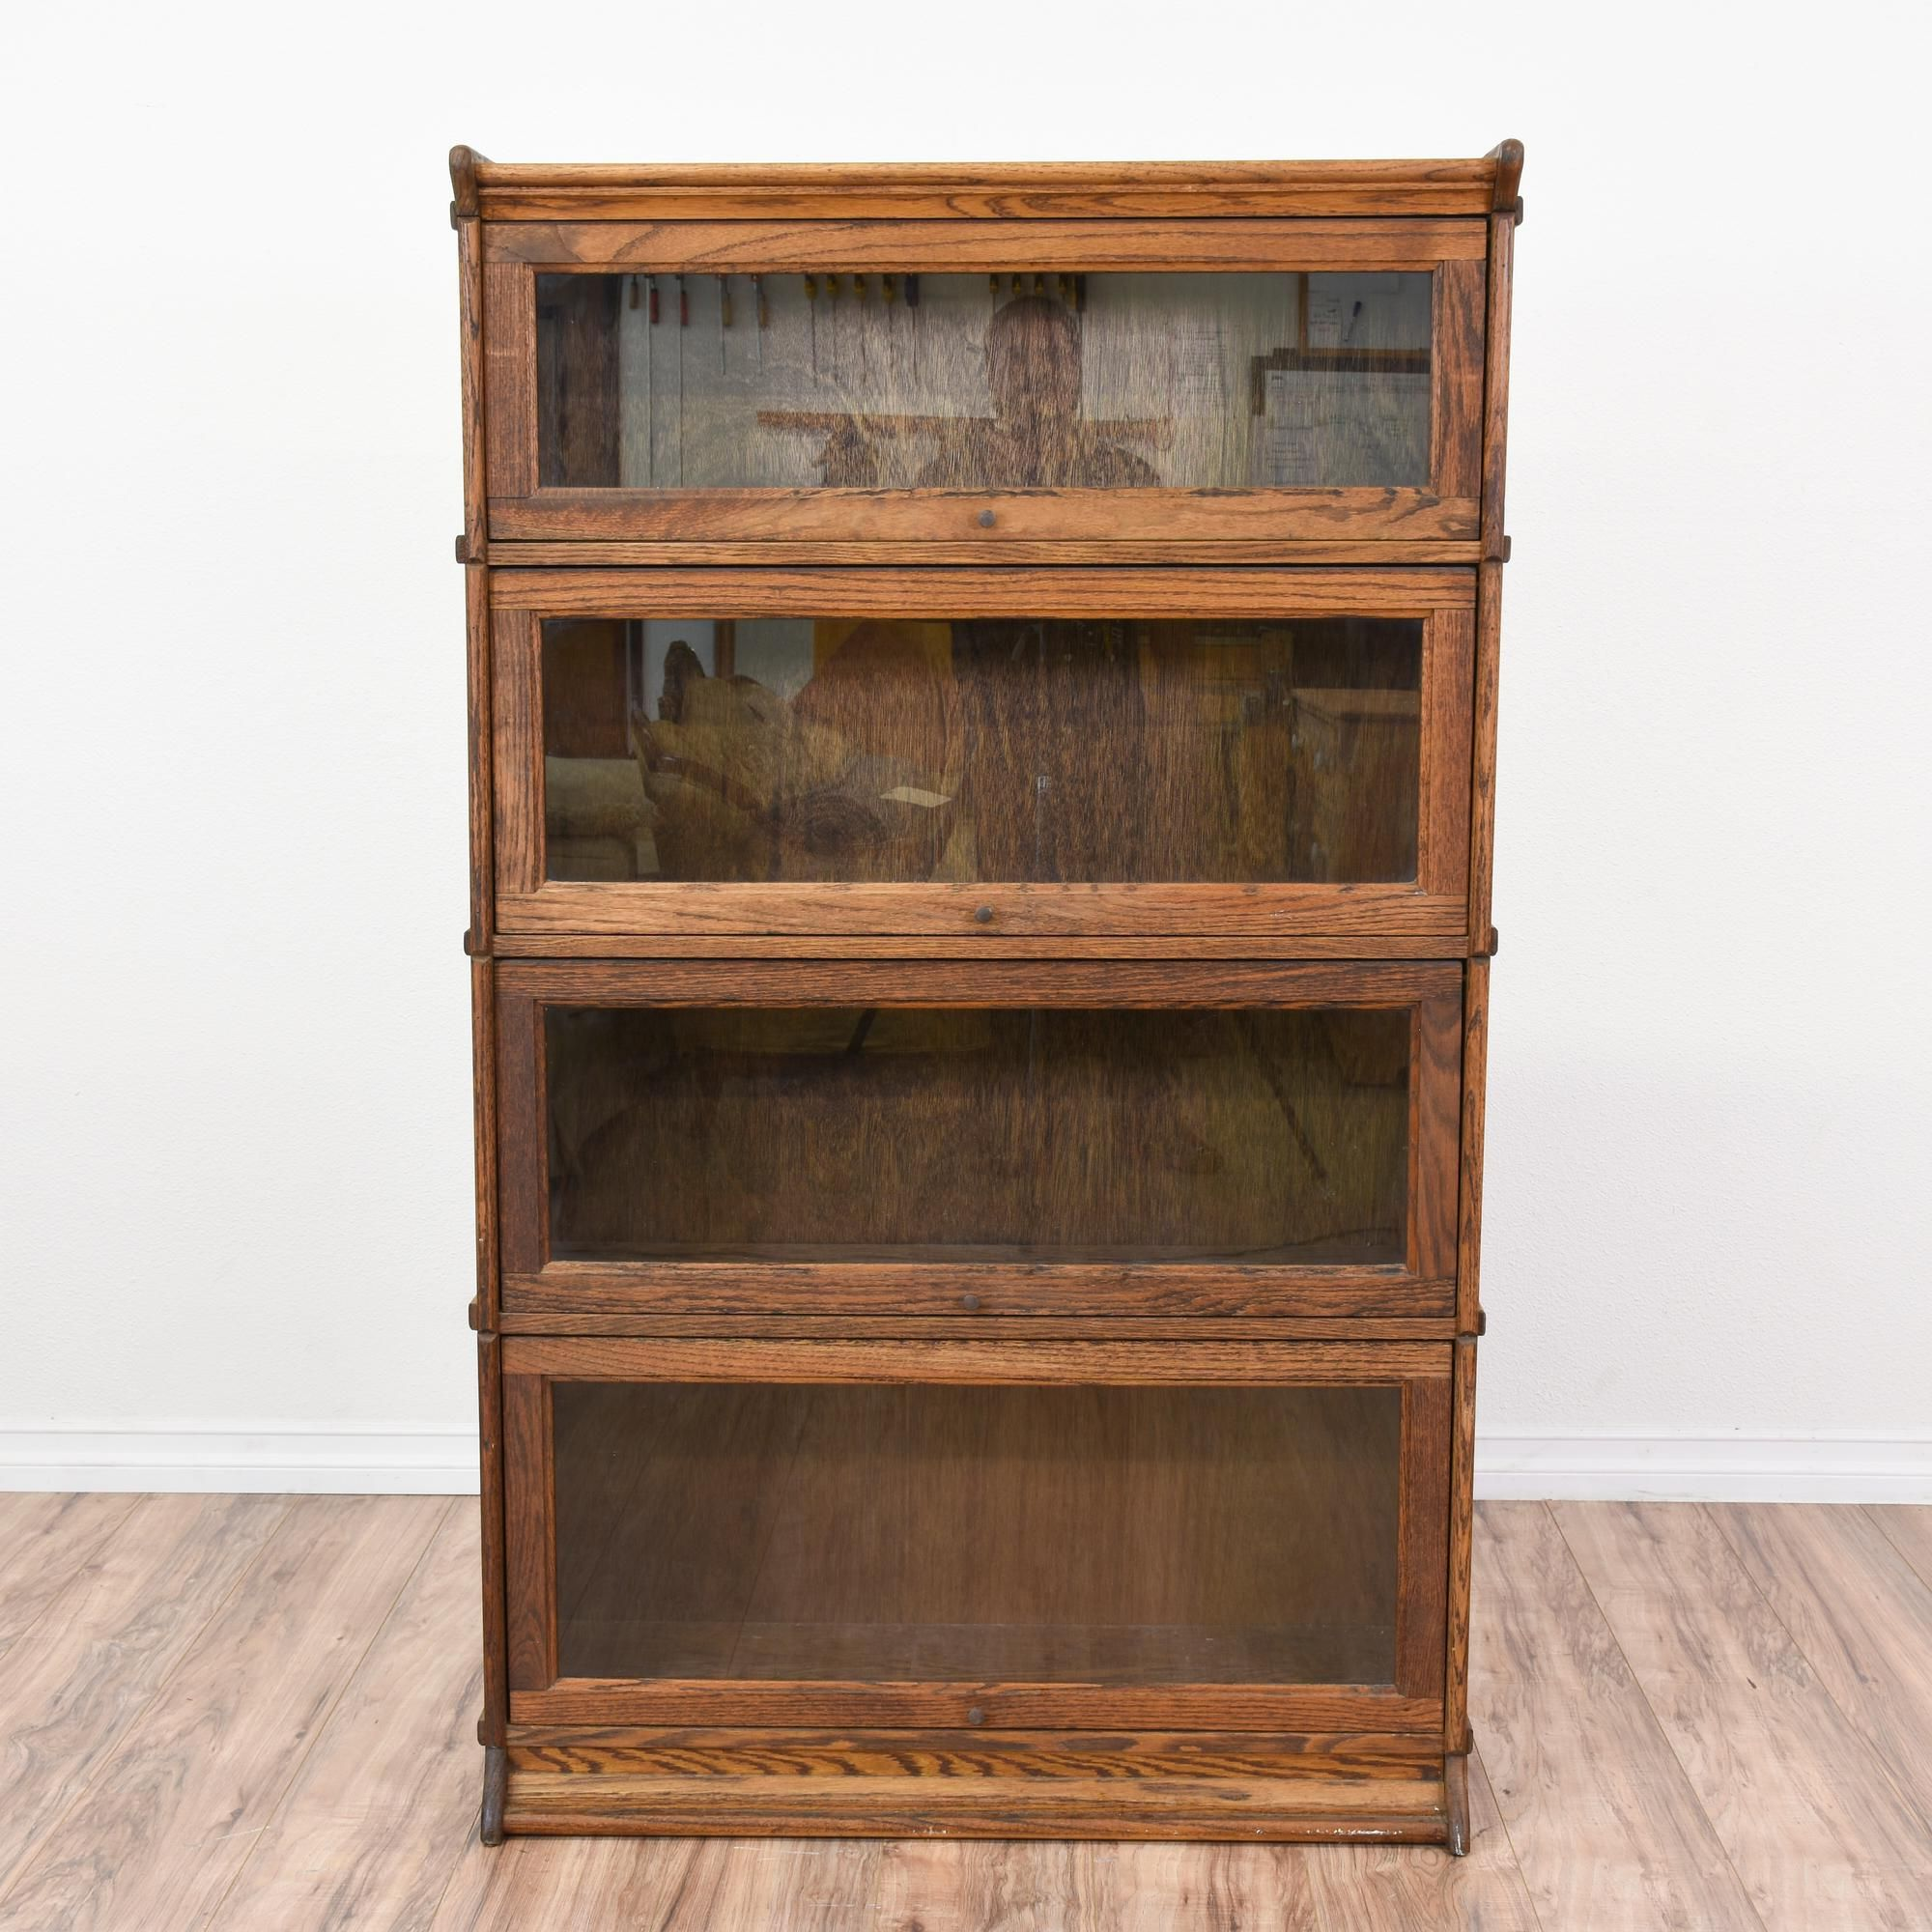 This Rustic Lawyers Bookcase Is Featured In A Solid Wood With Dark Oak Finish